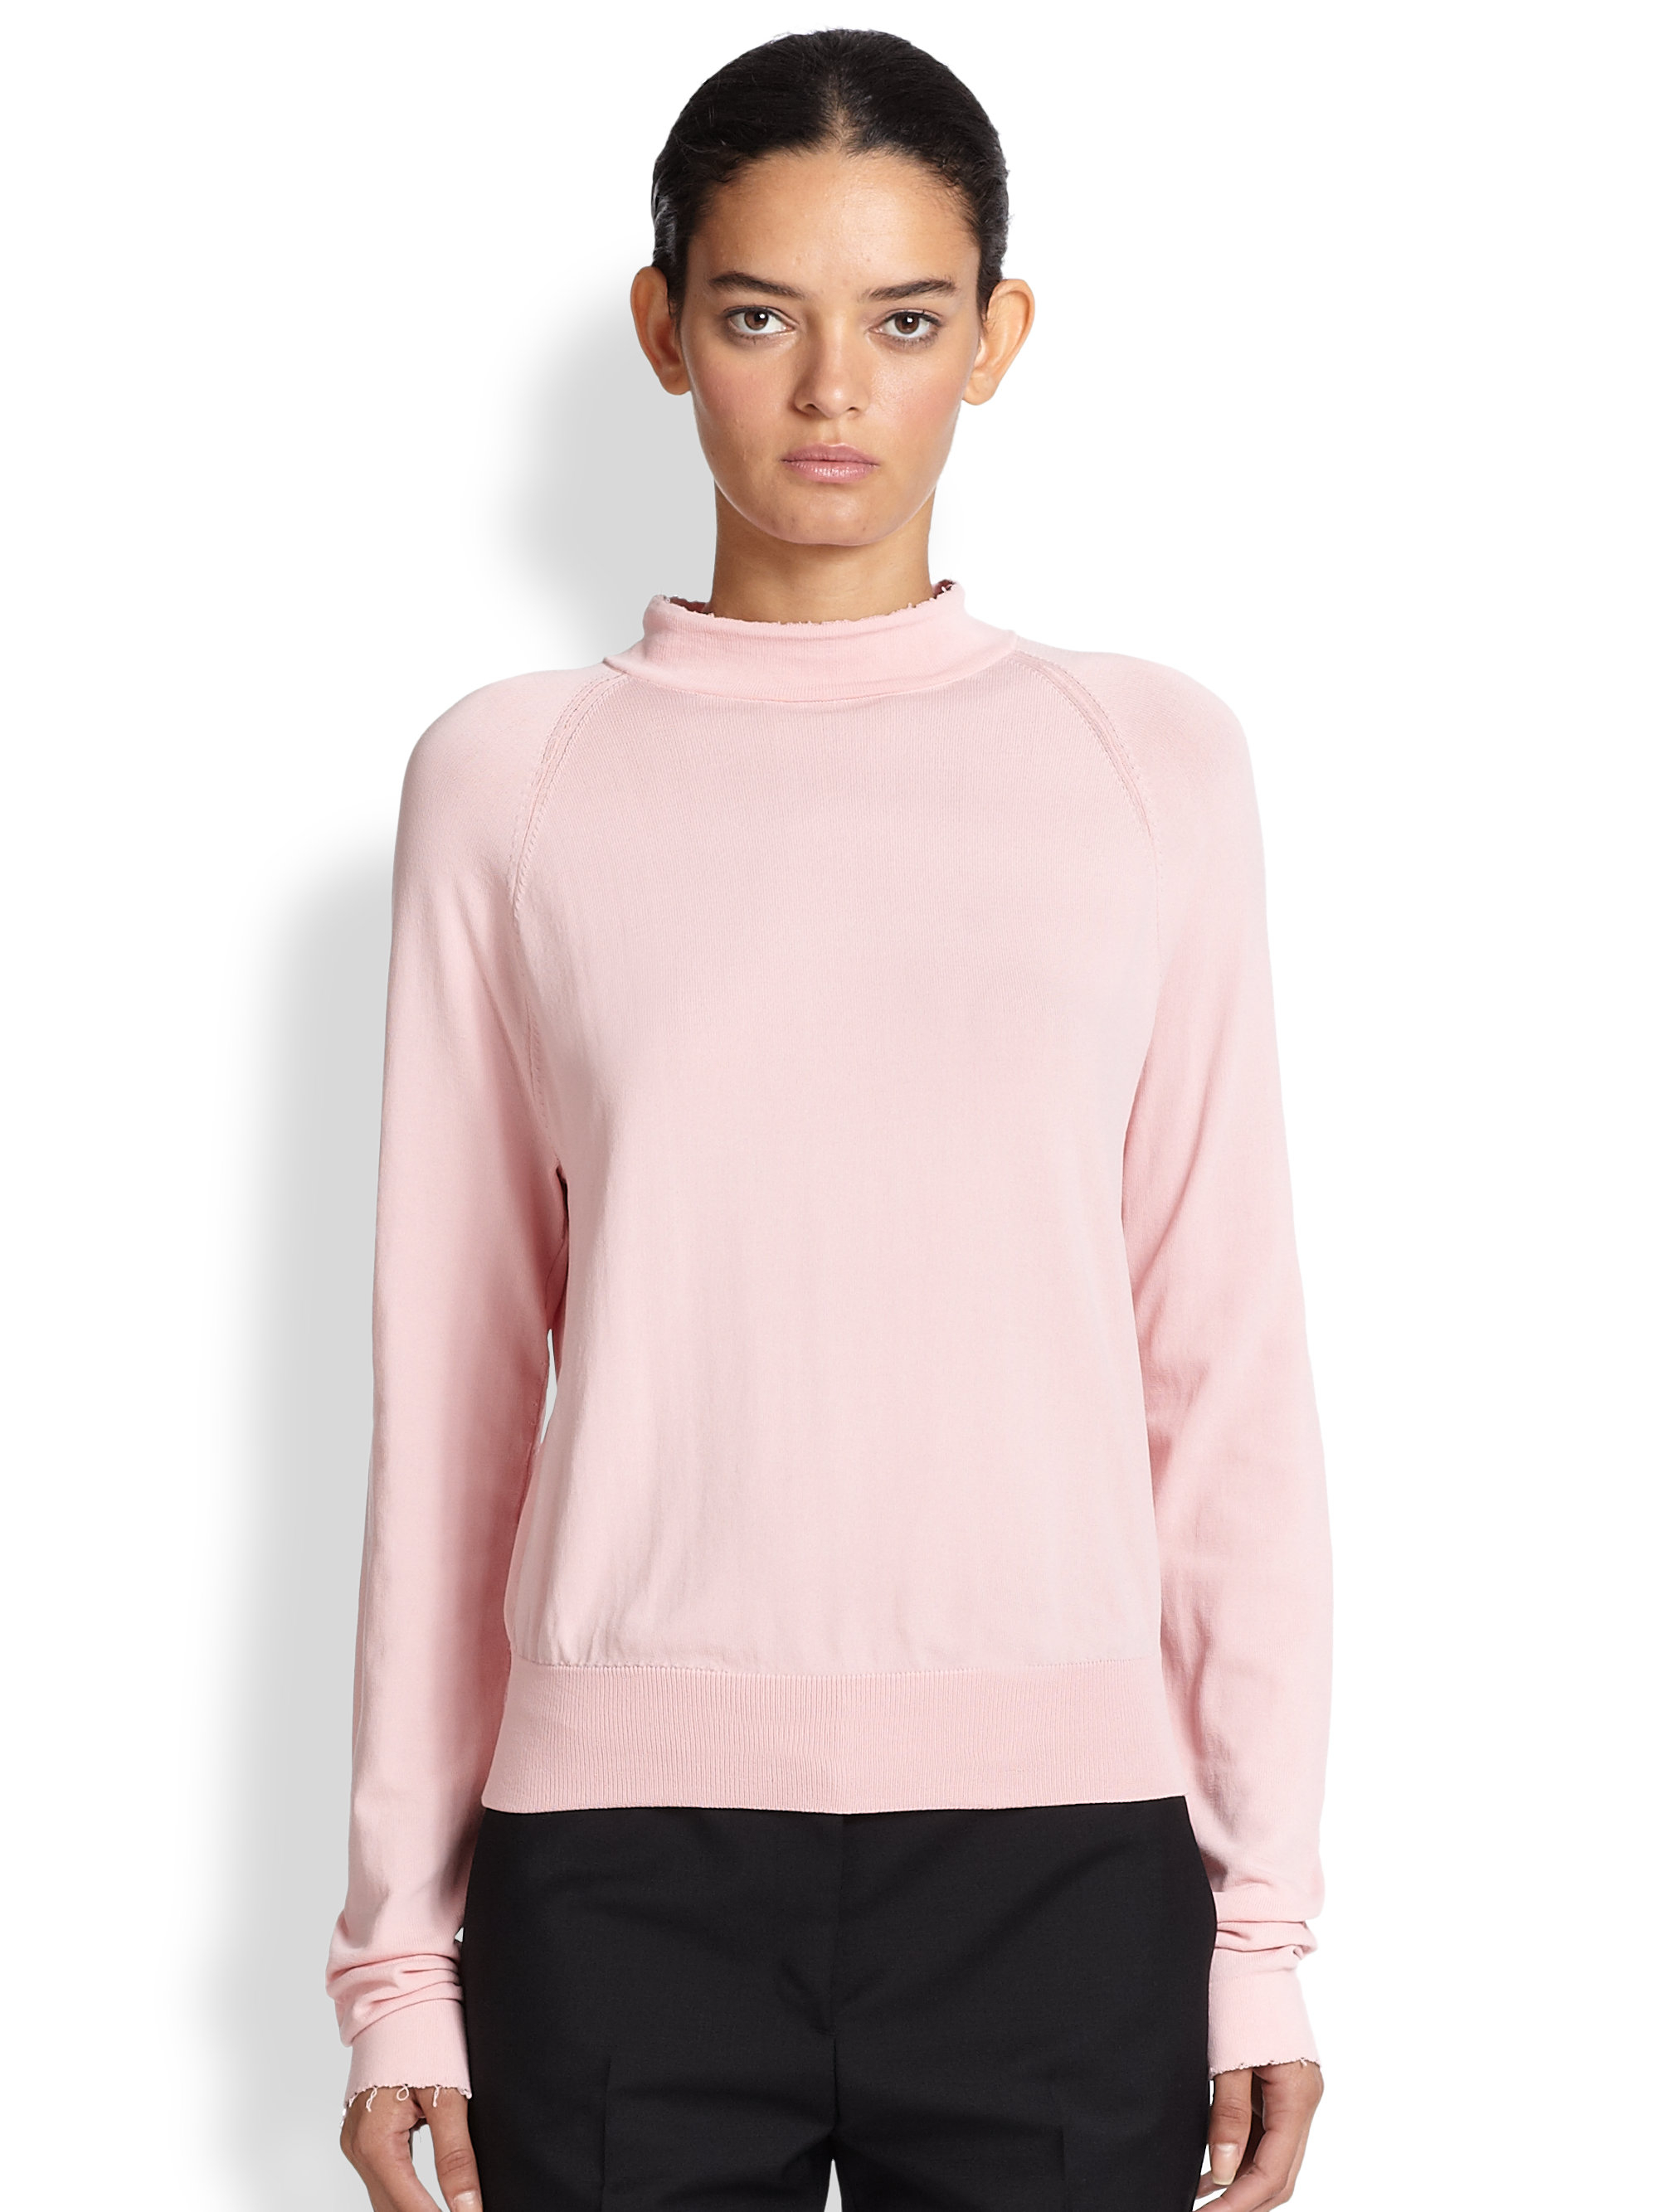 Acne studios Blossom Distressed Mockneck Sweater in Pink | Lyst